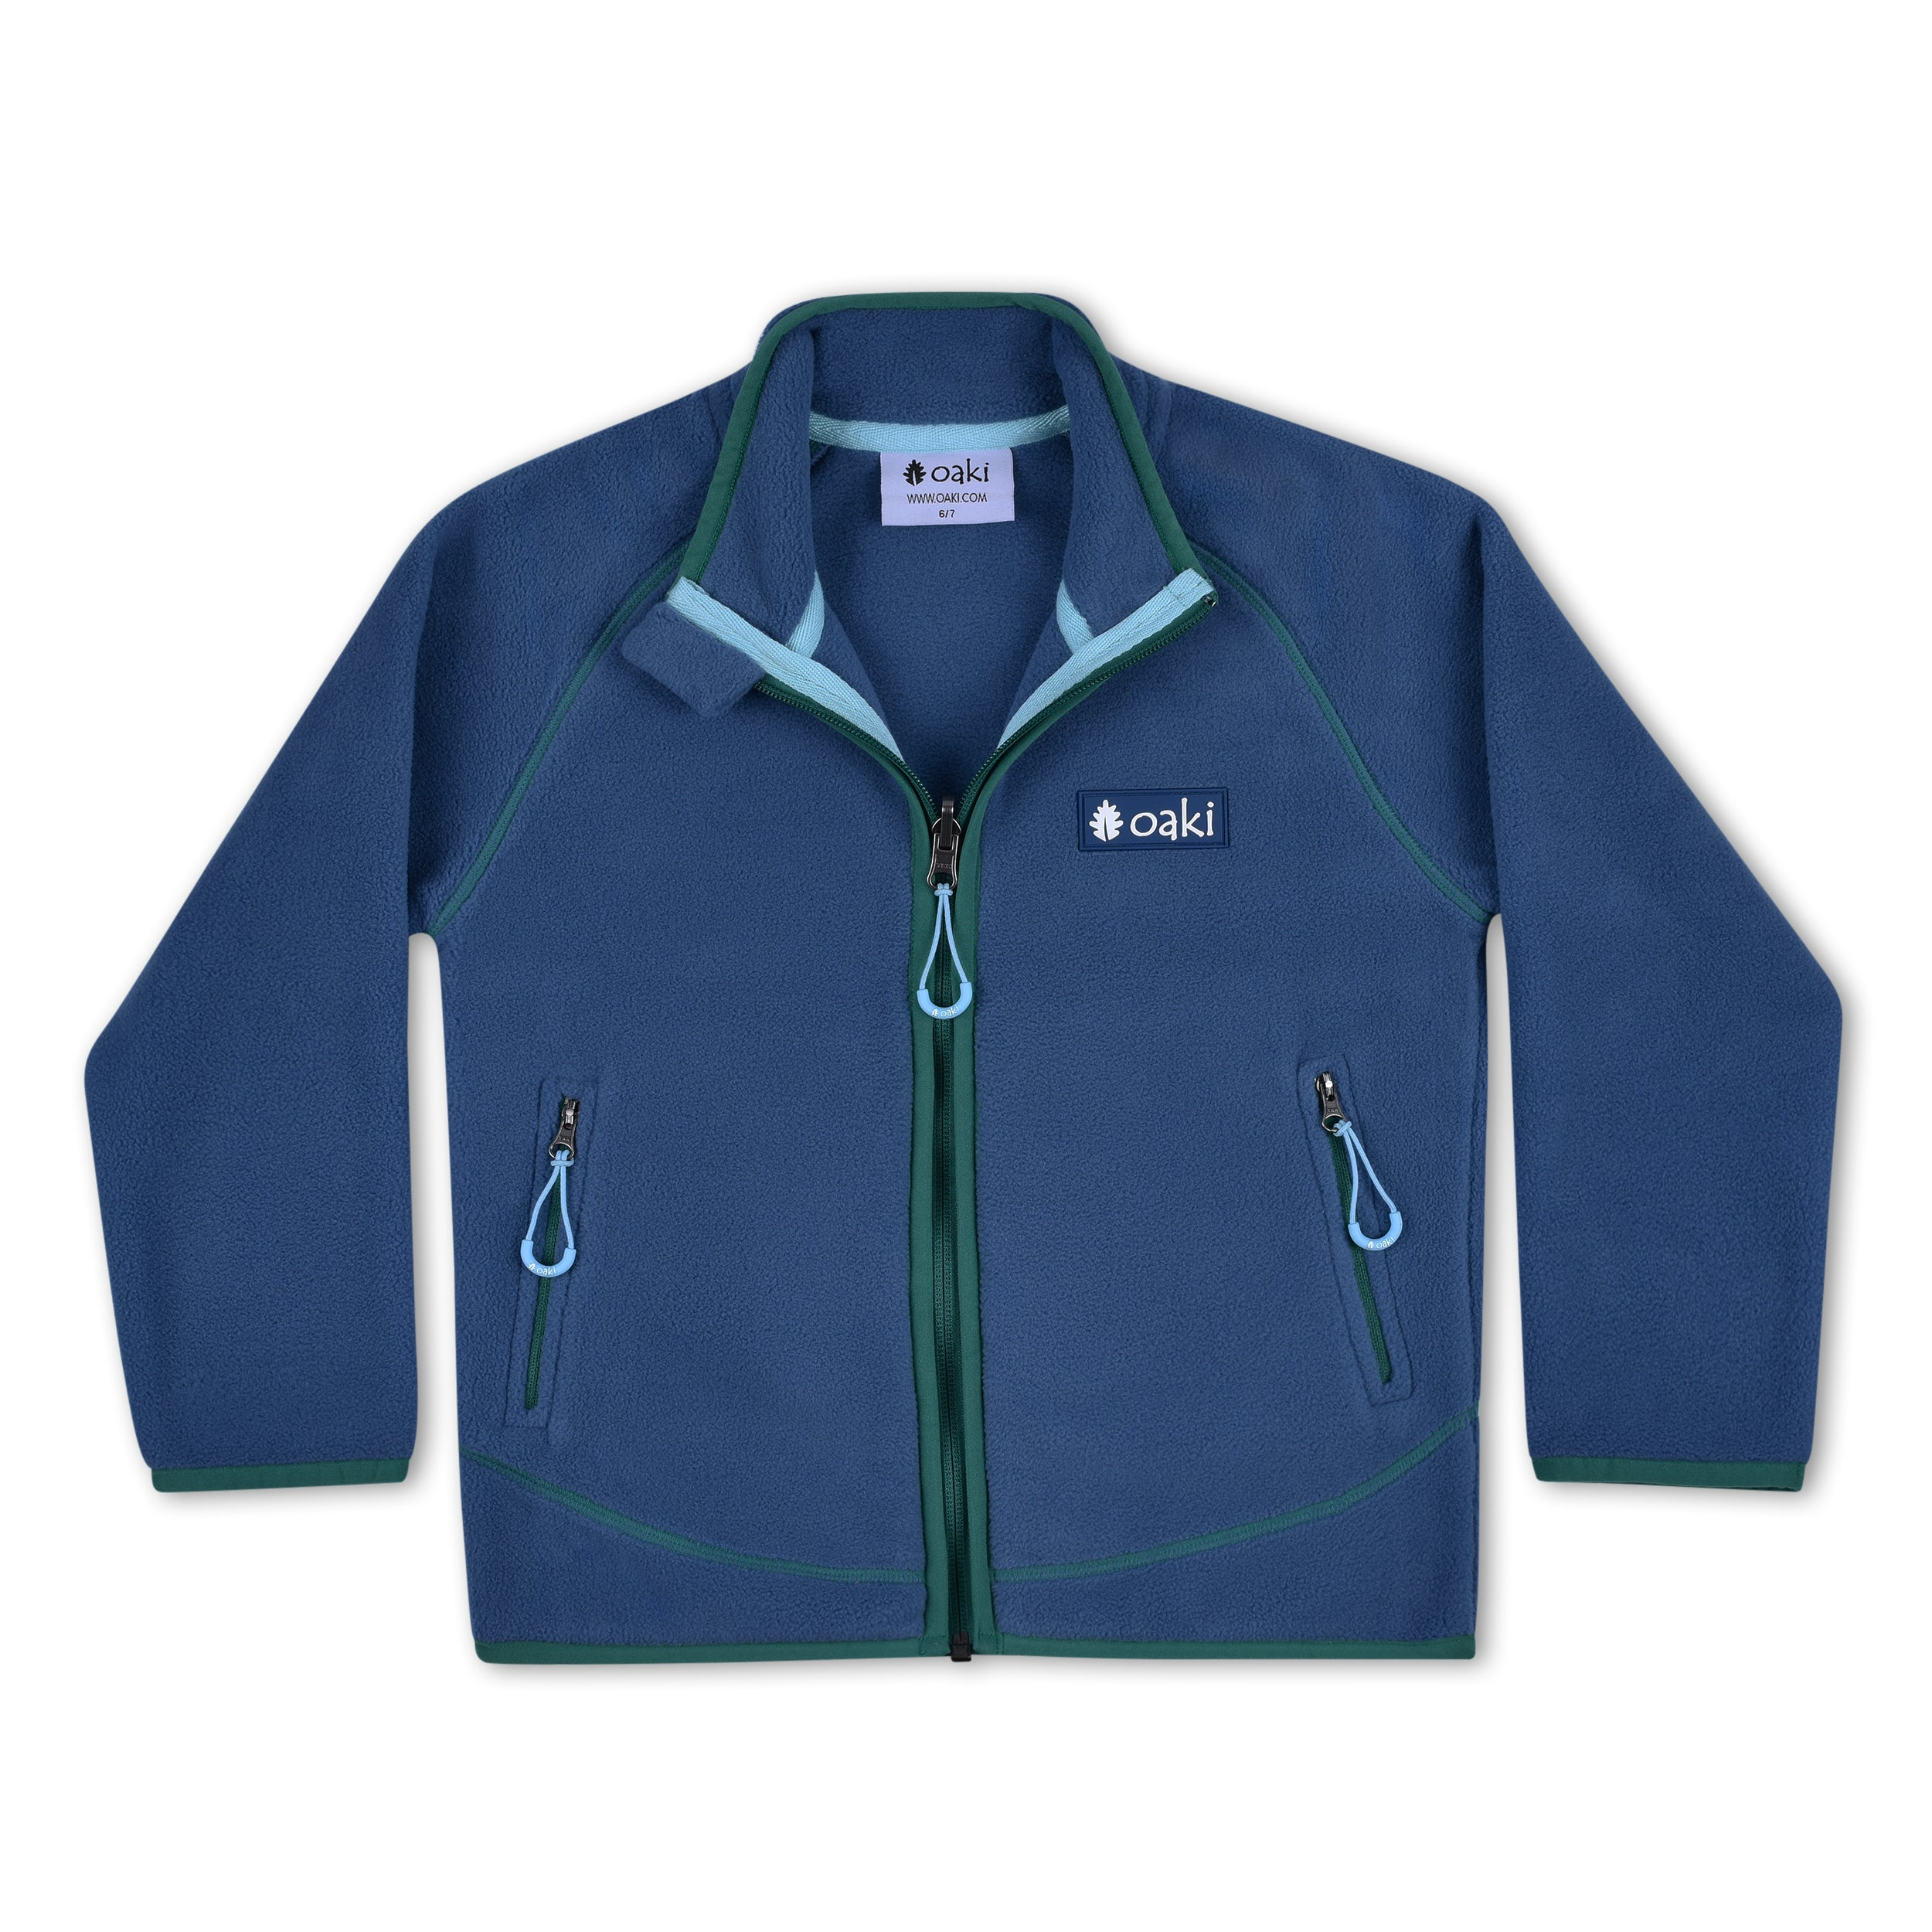 200 Series Polartec® Fleece Jacket, Navy/Green  (Sizing runs small, recommend sizing up)